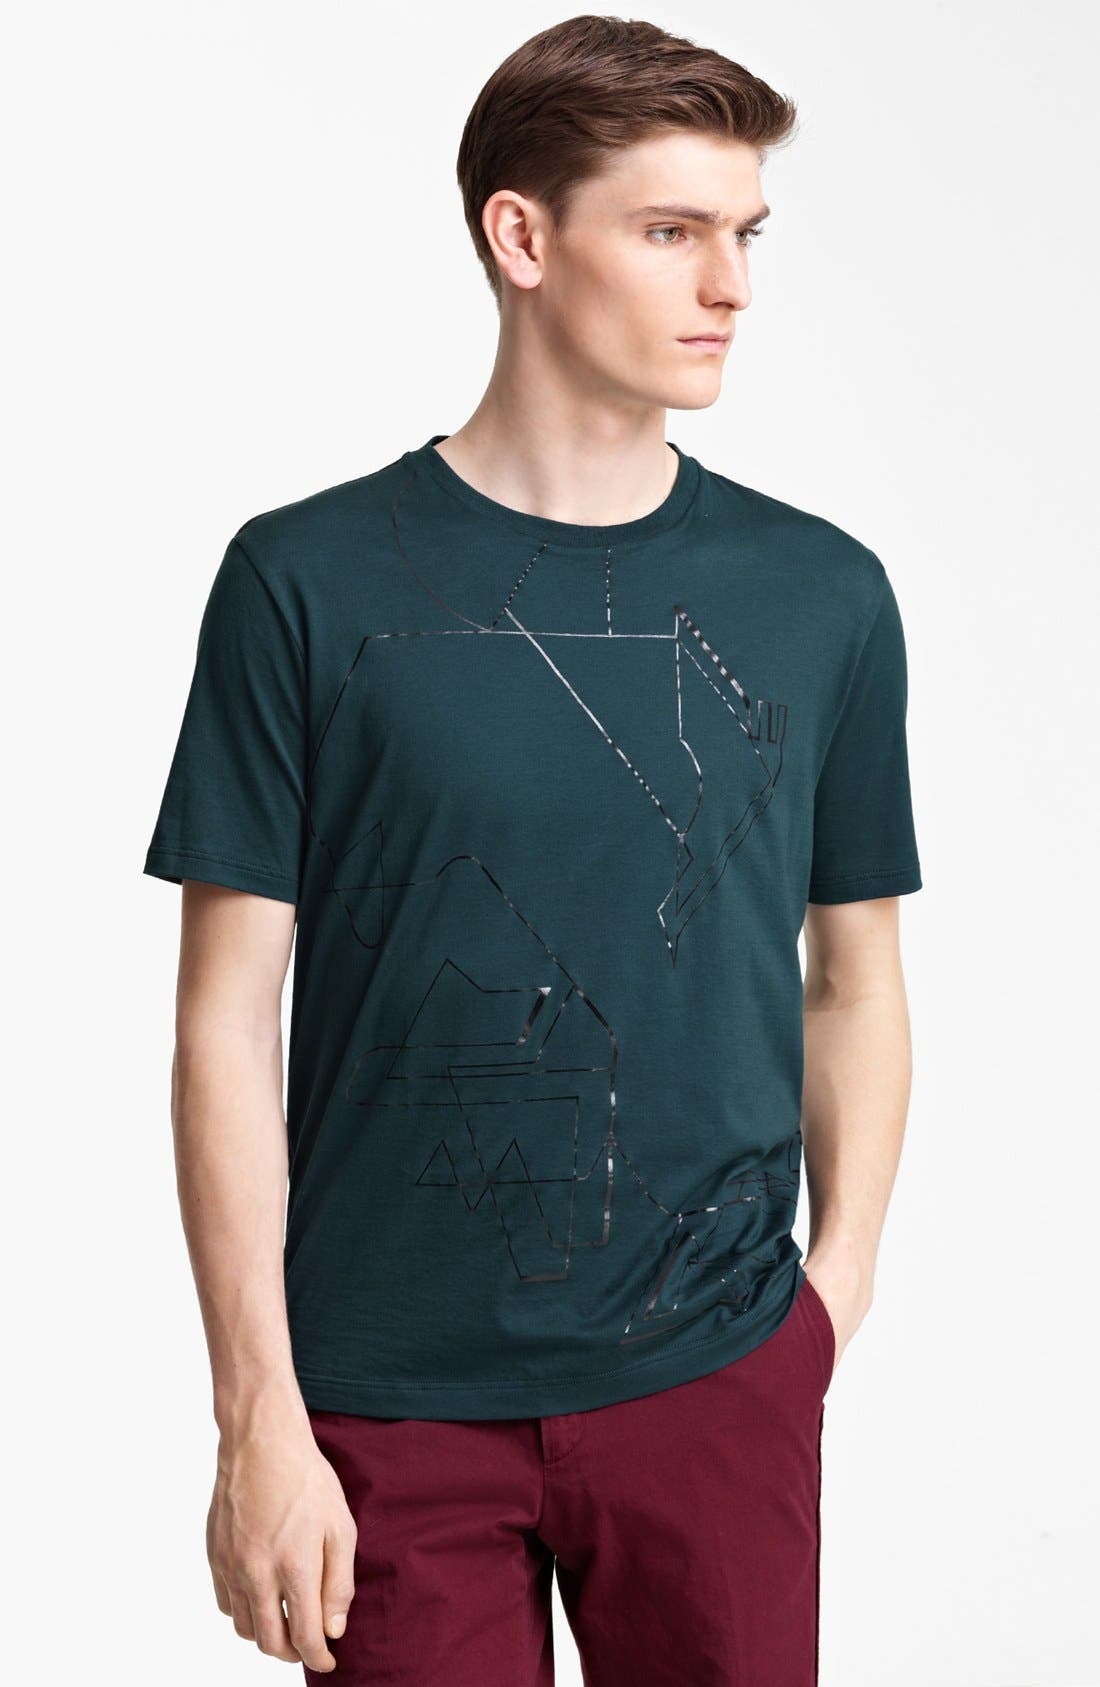 Alternate Image 1 Selected - Lanvin Geometric Graphic T-Shirt